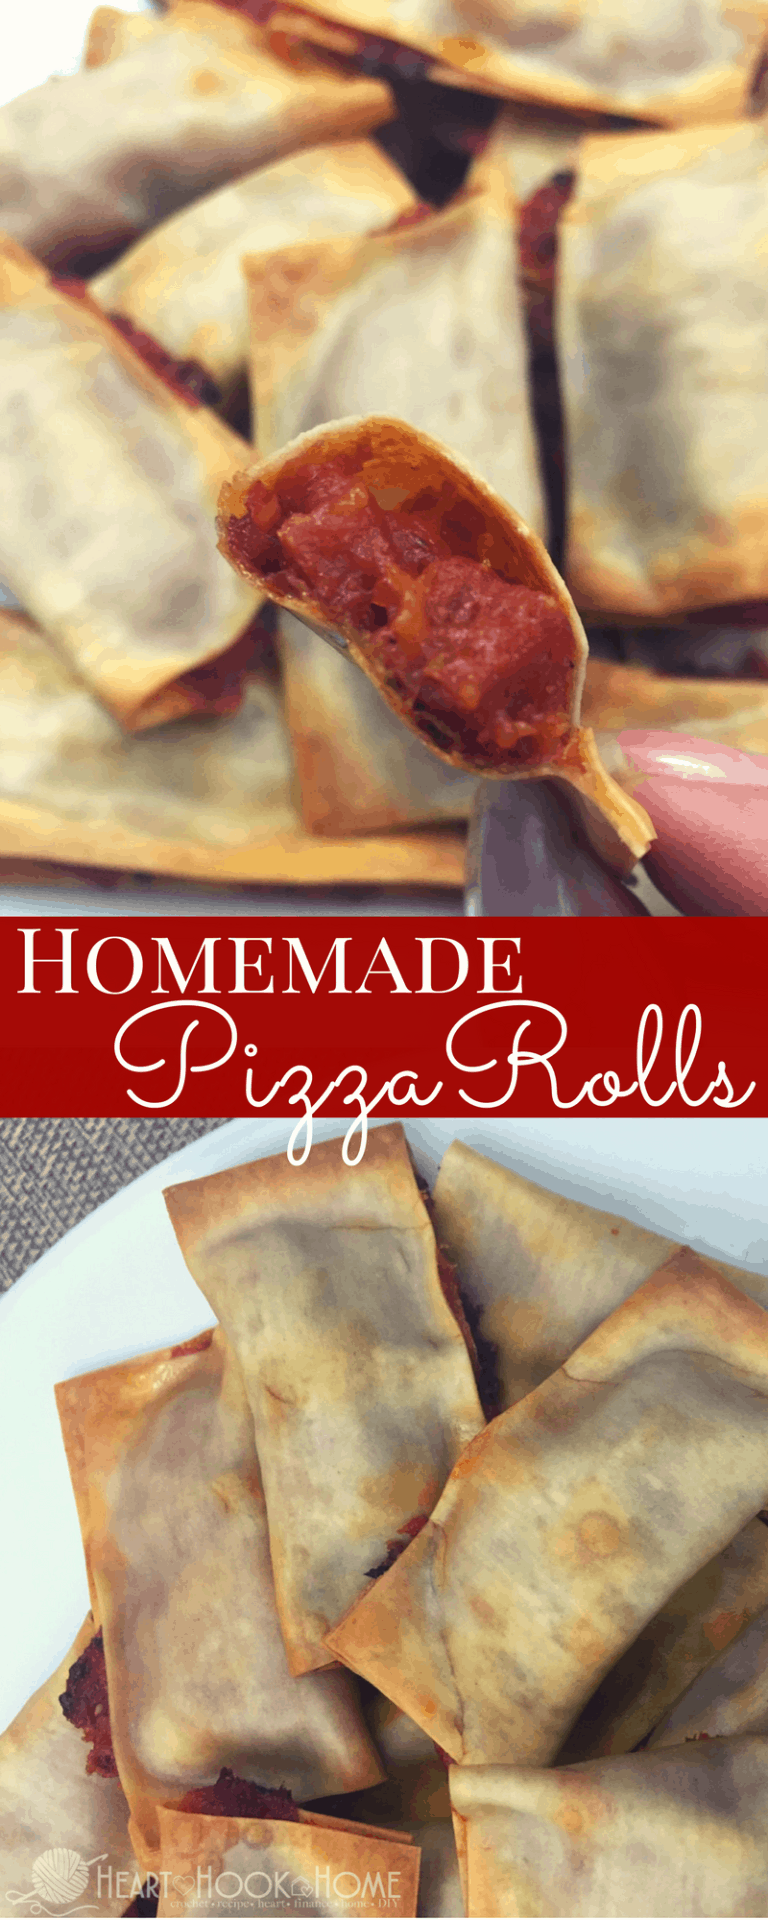 Homemade (Baked) Pizza Rolls